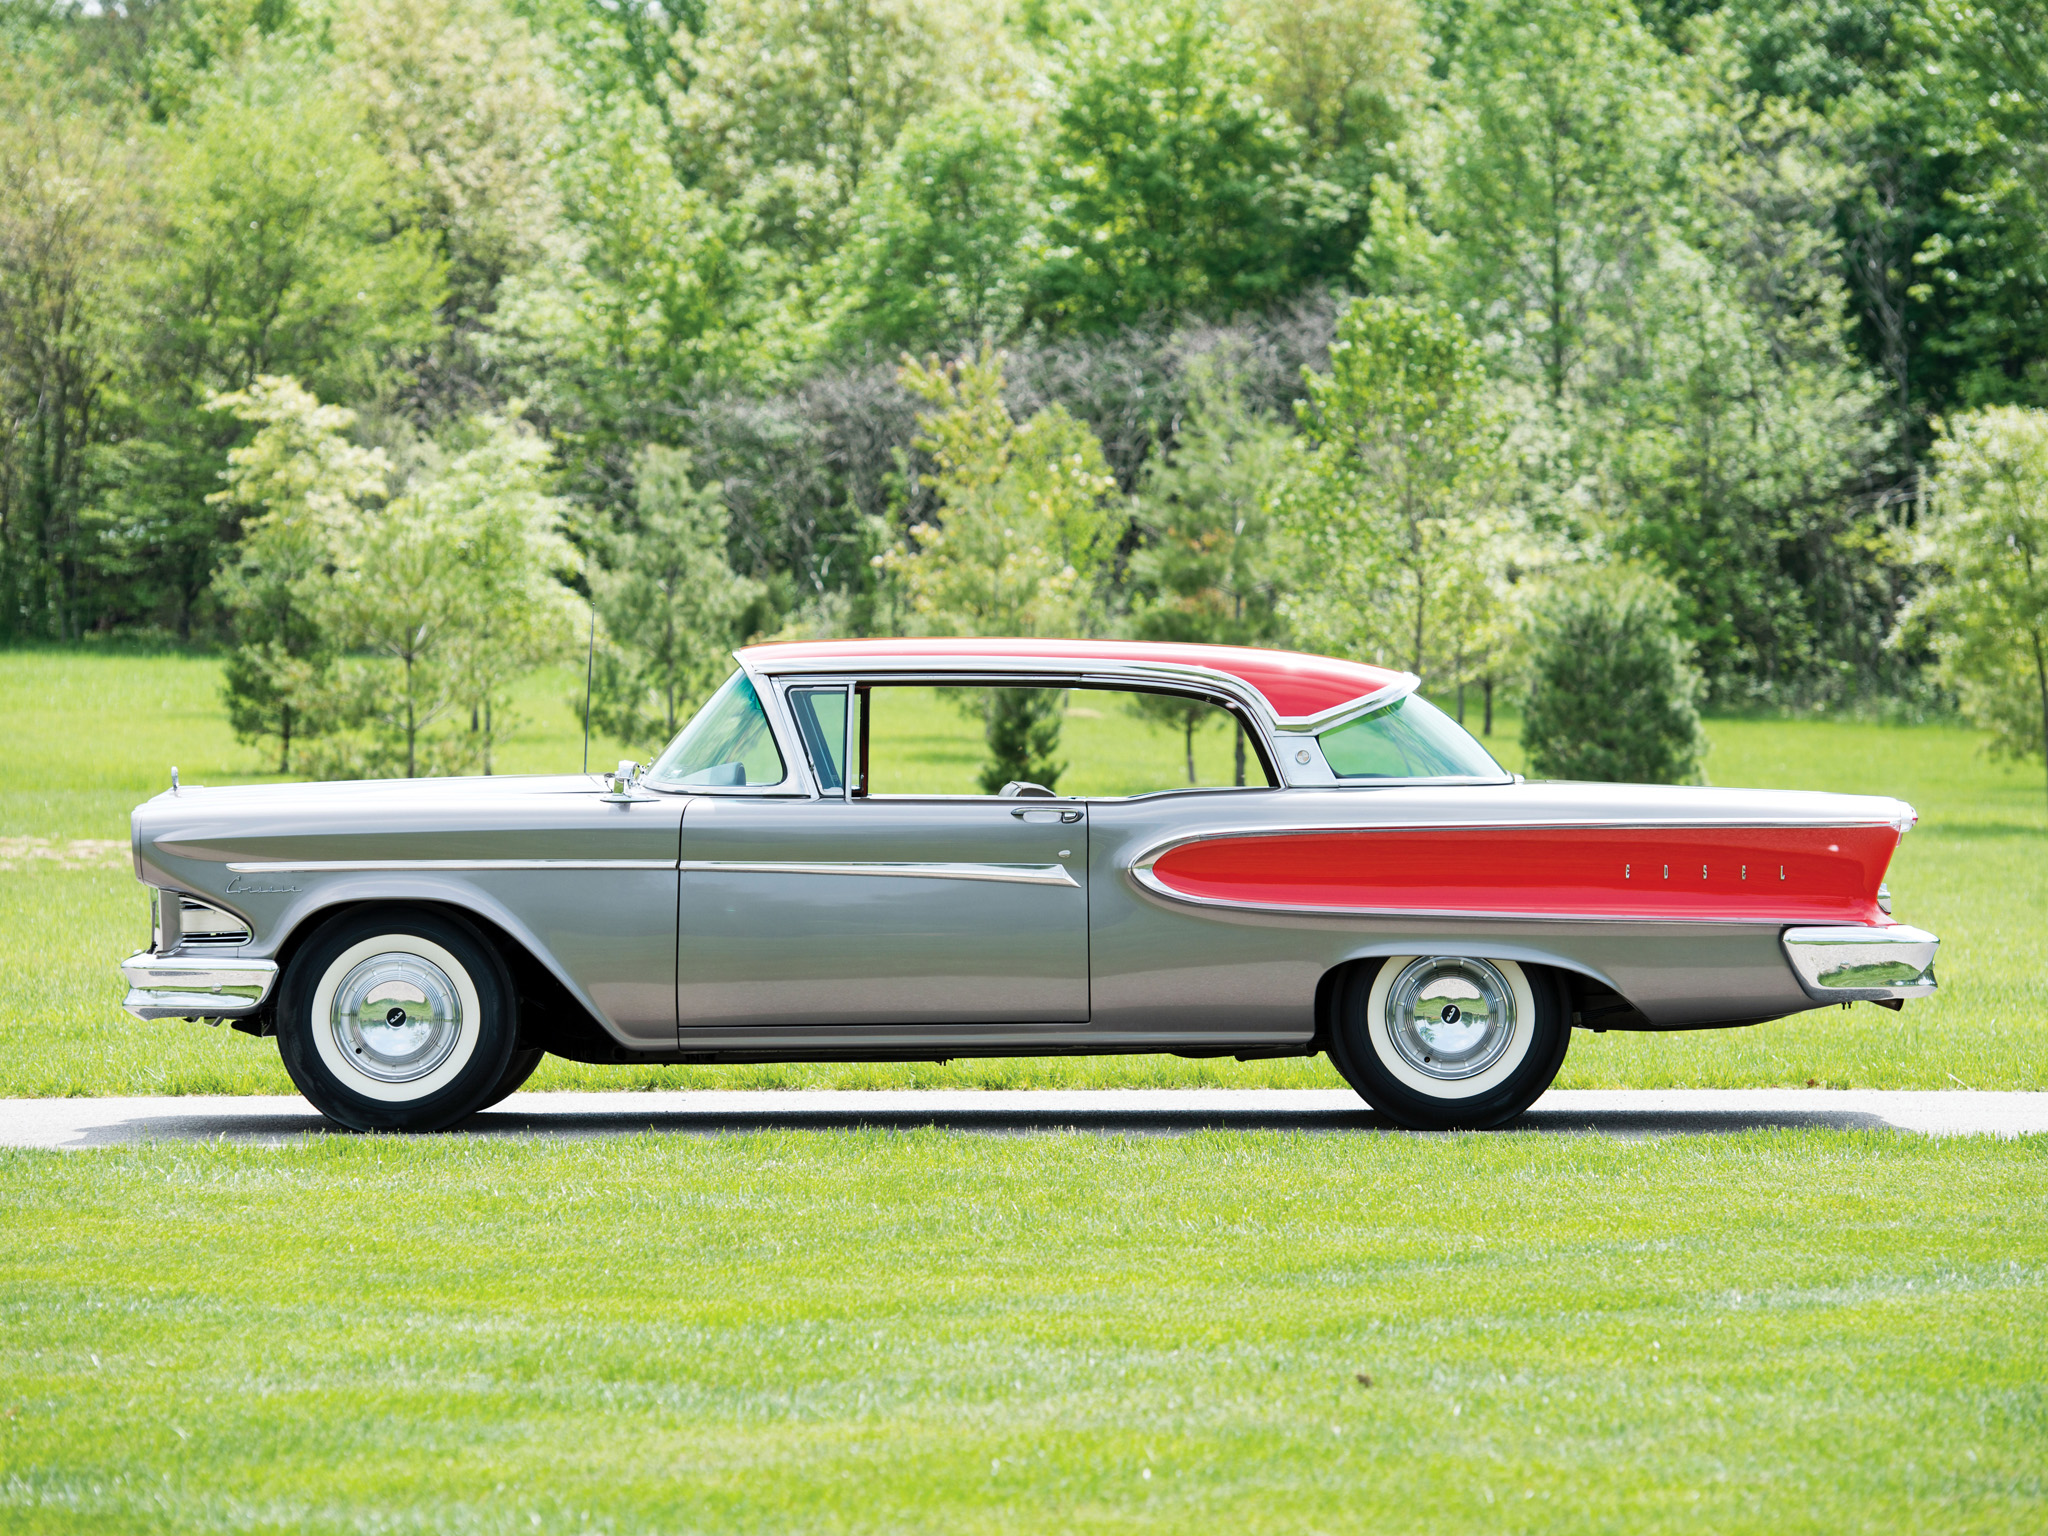 Edsel Ford Car Images